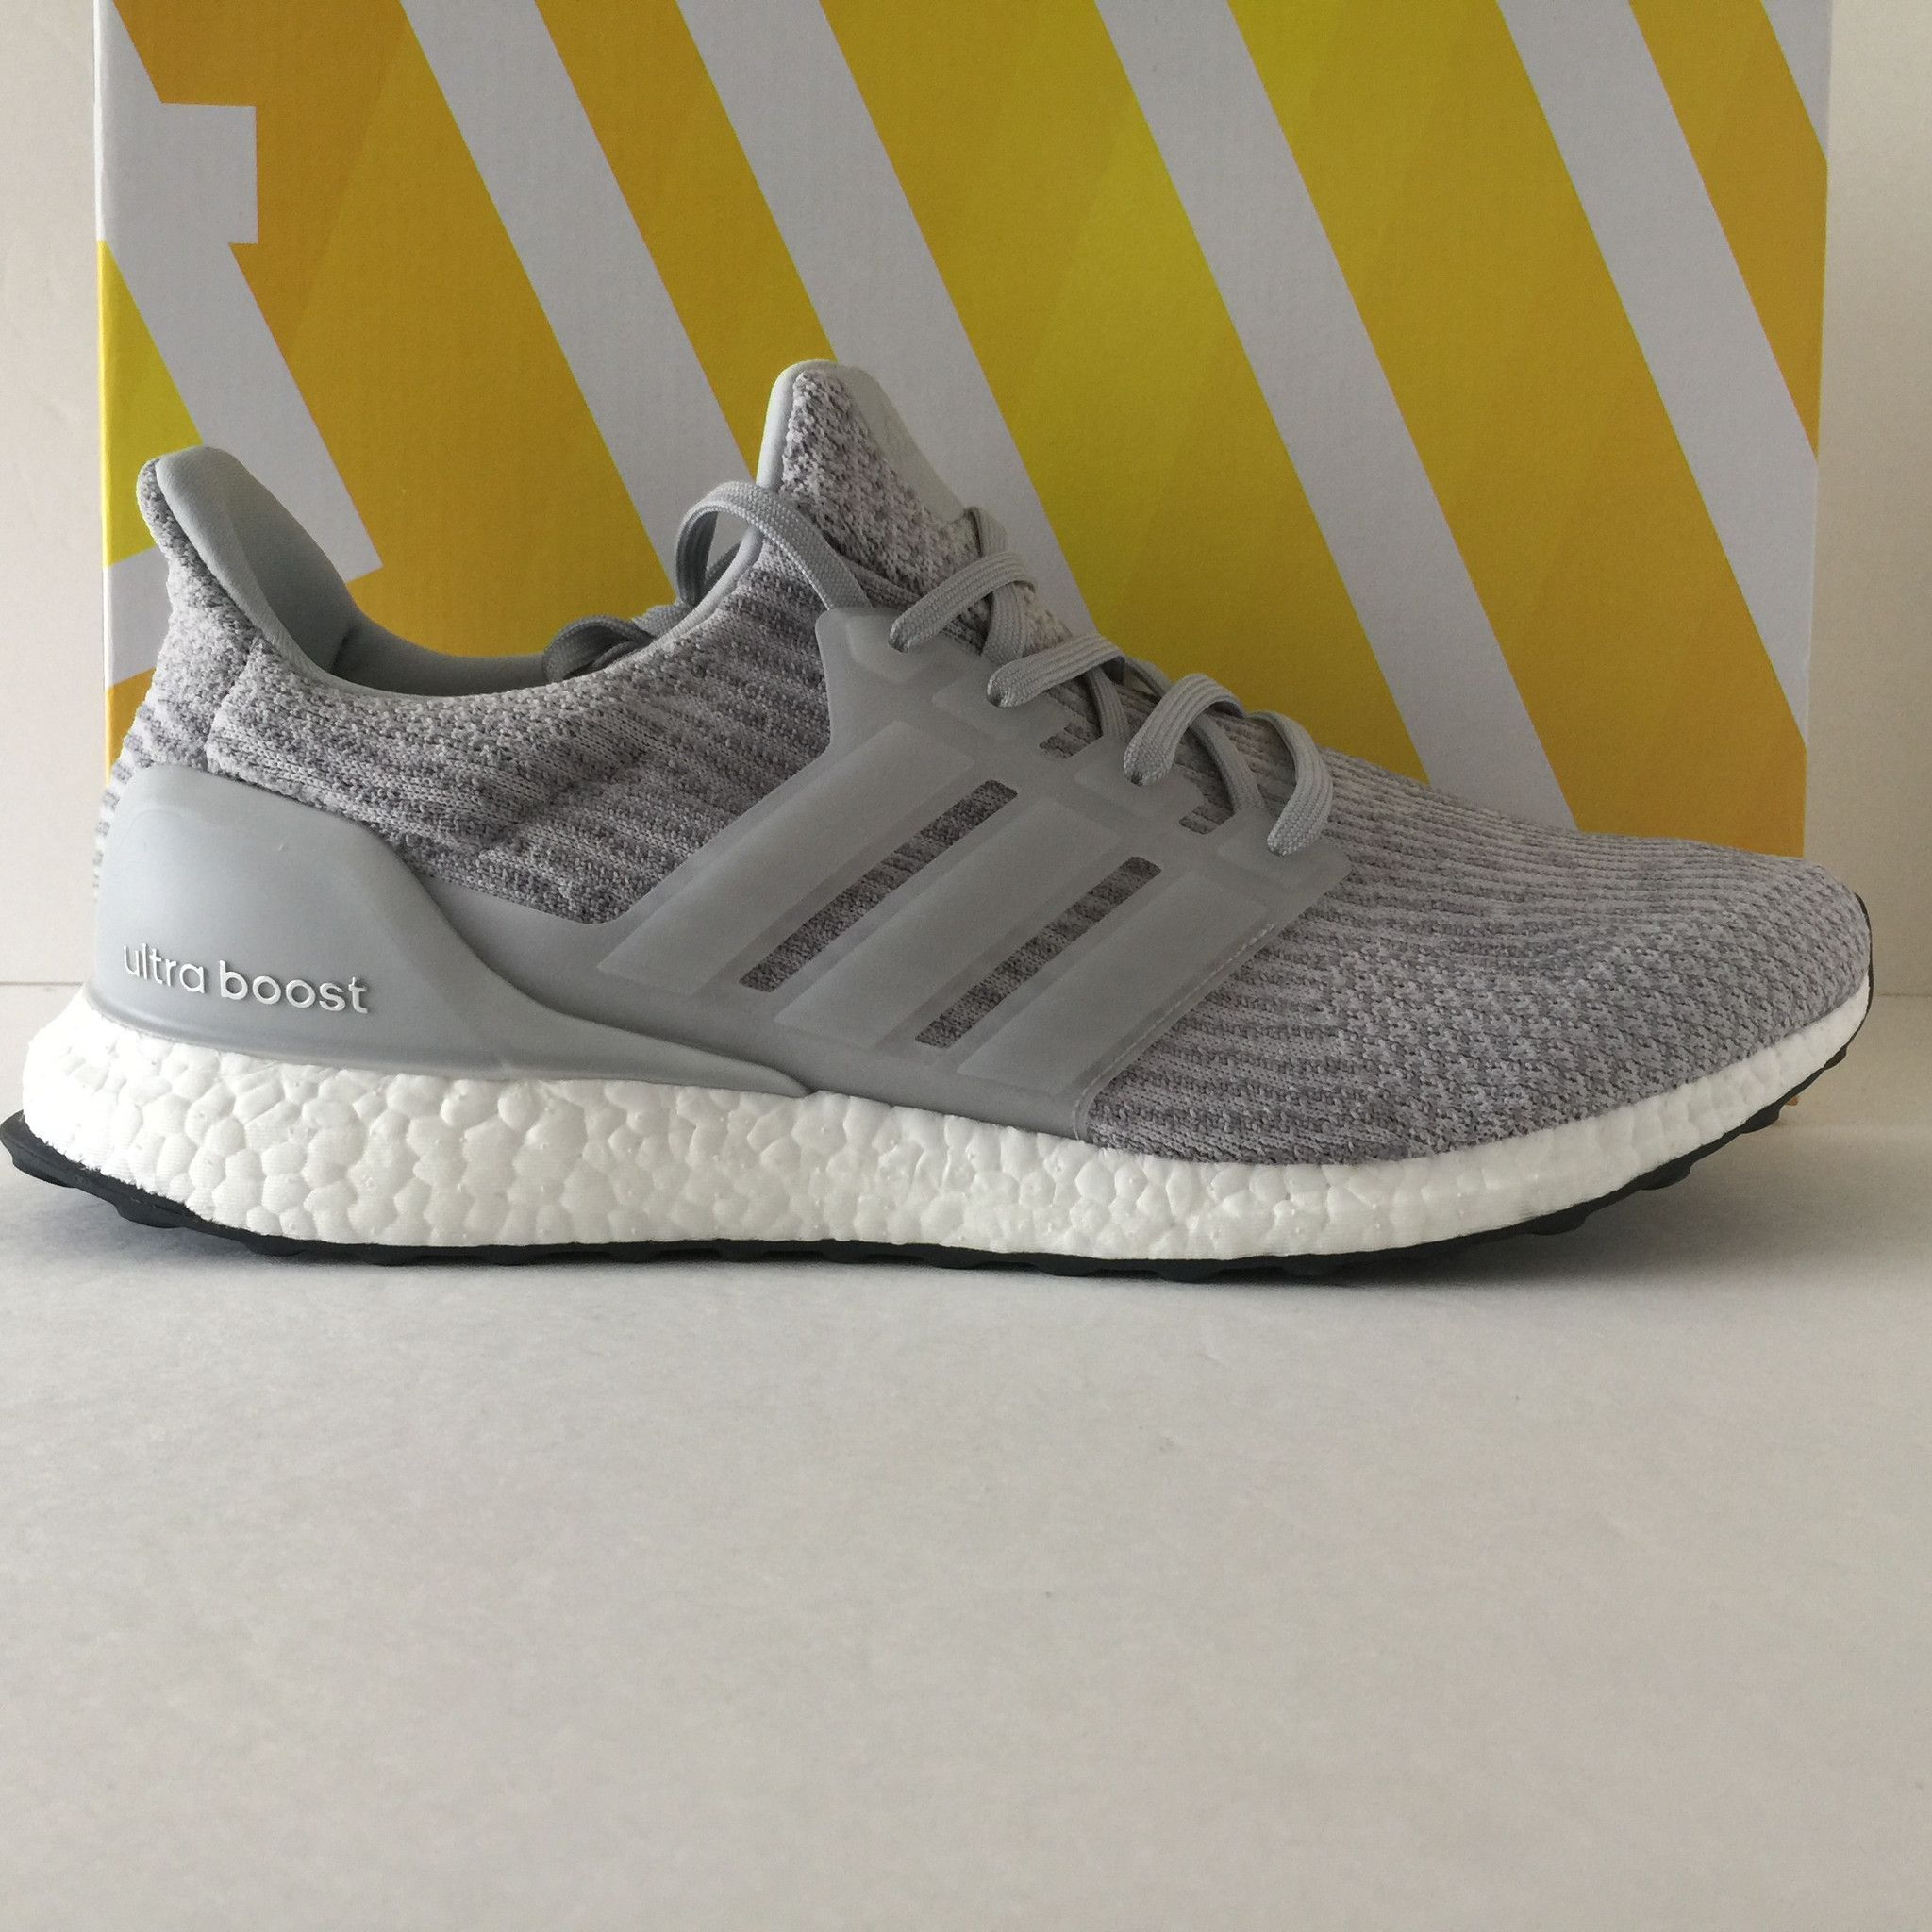 DS Adidas Ultra Boost 3.0 Clear Grey Size 14